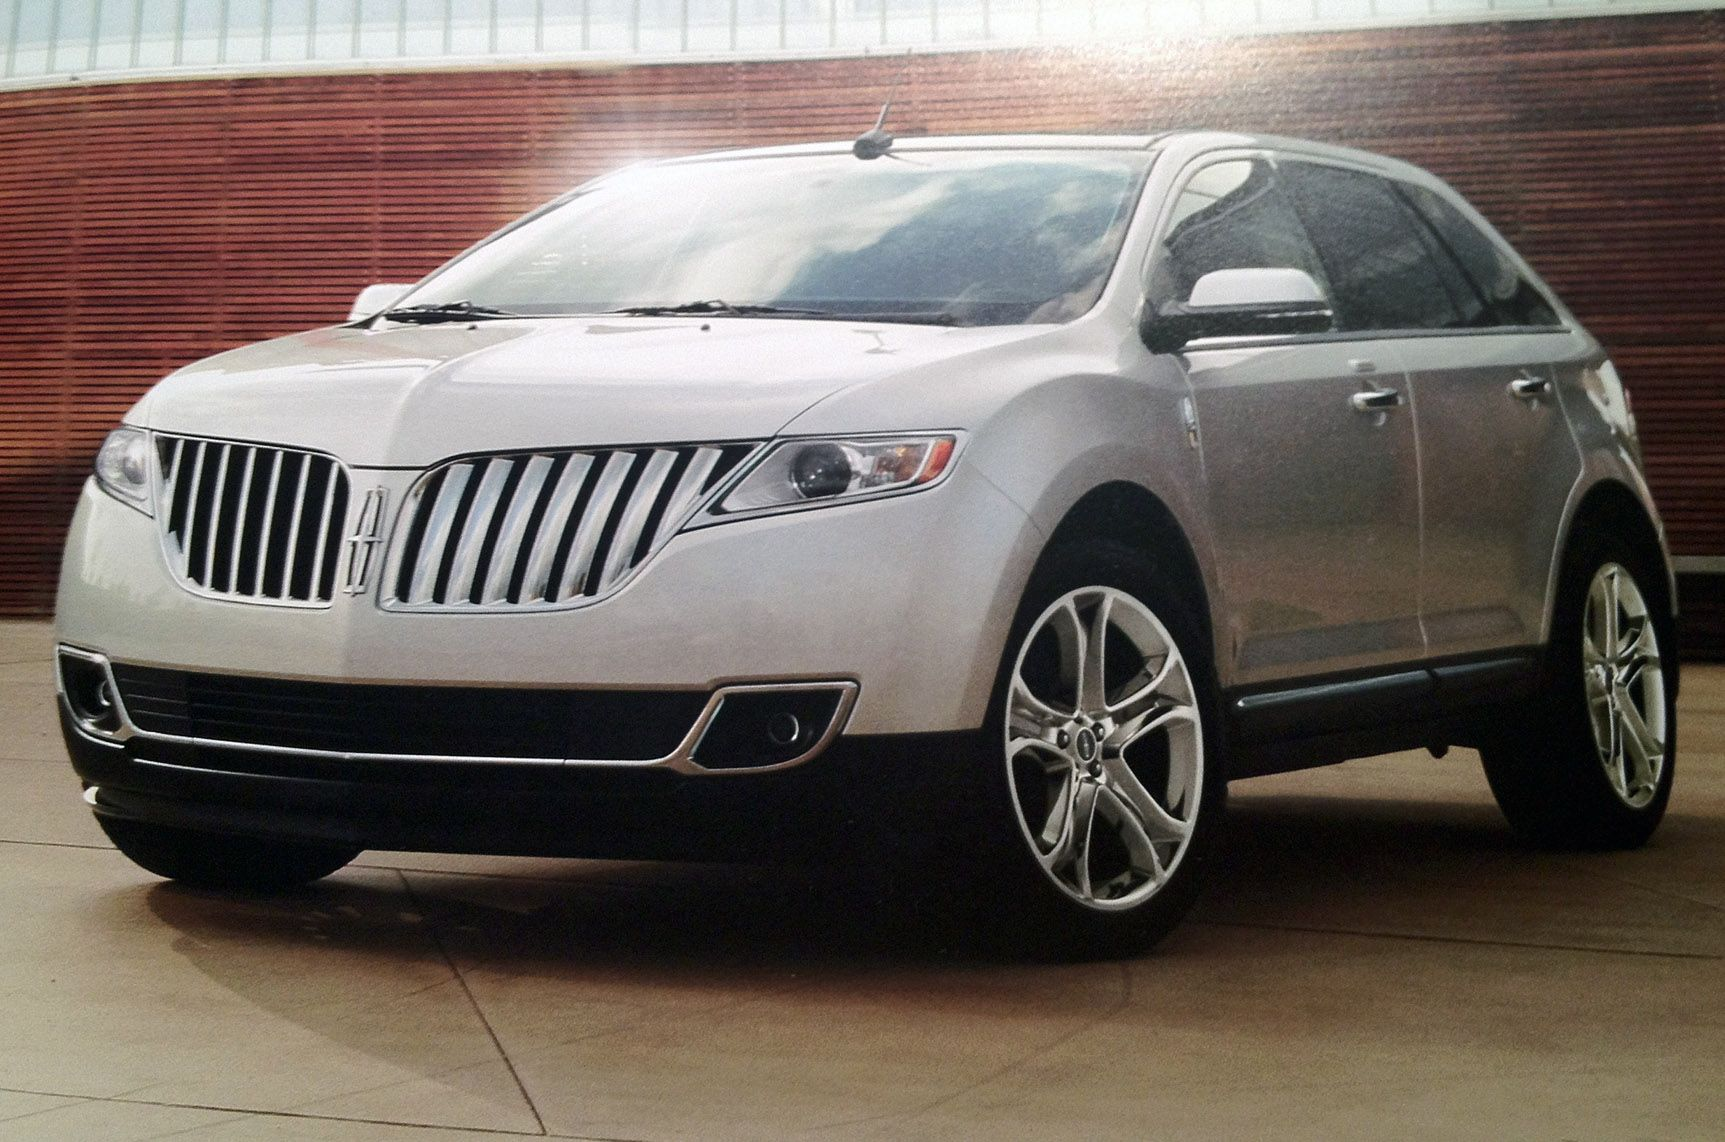 Mkx On 22s Lincoln Mkx Lincoln Mkx 22 Wheels Lincoln Motor